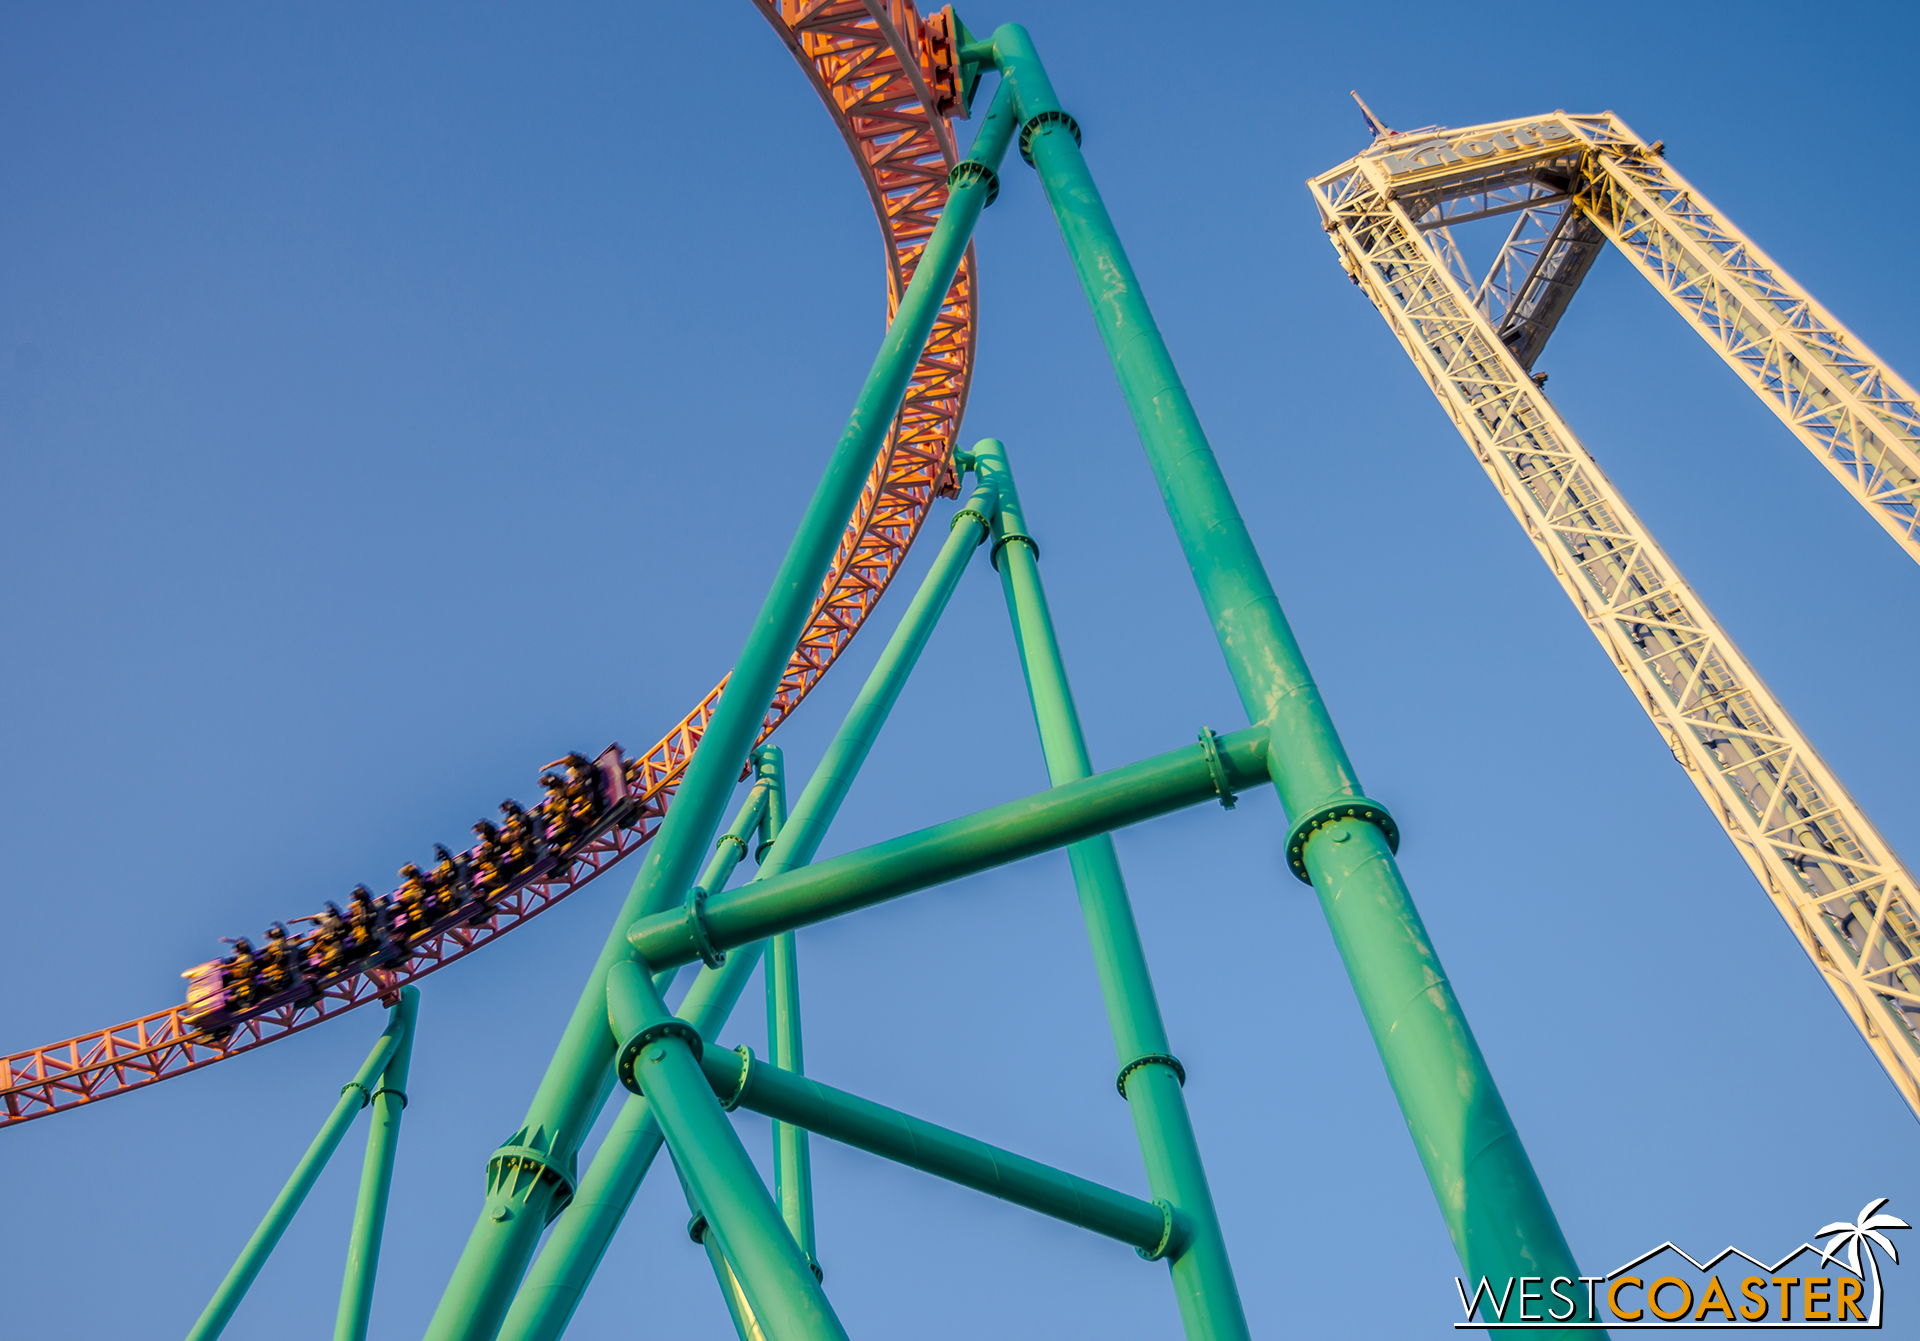 Xcelerator, with Supreme Scream in the background.